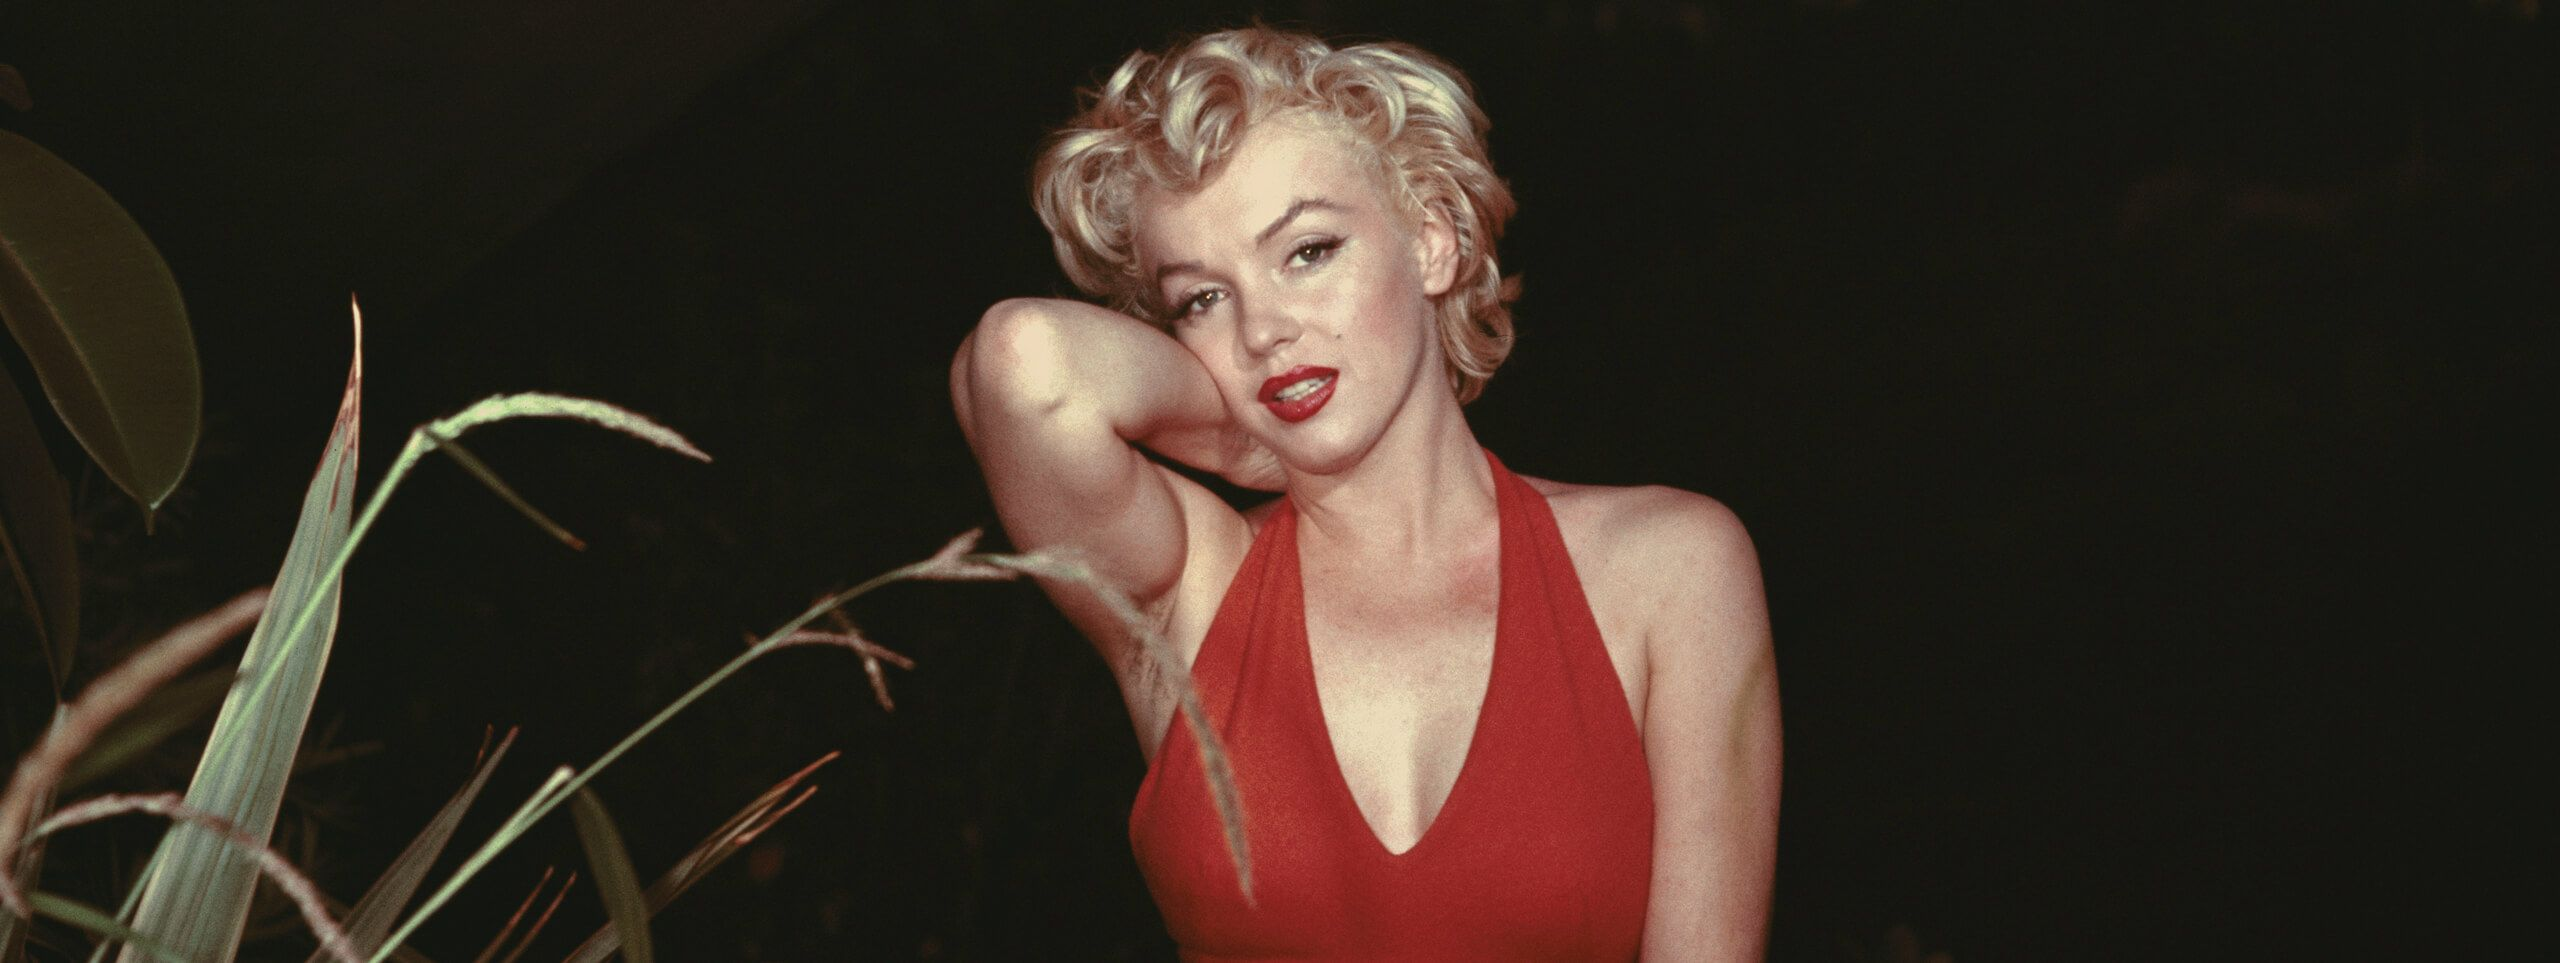 Marilyn Monroe is an icon for 50s hairstyles